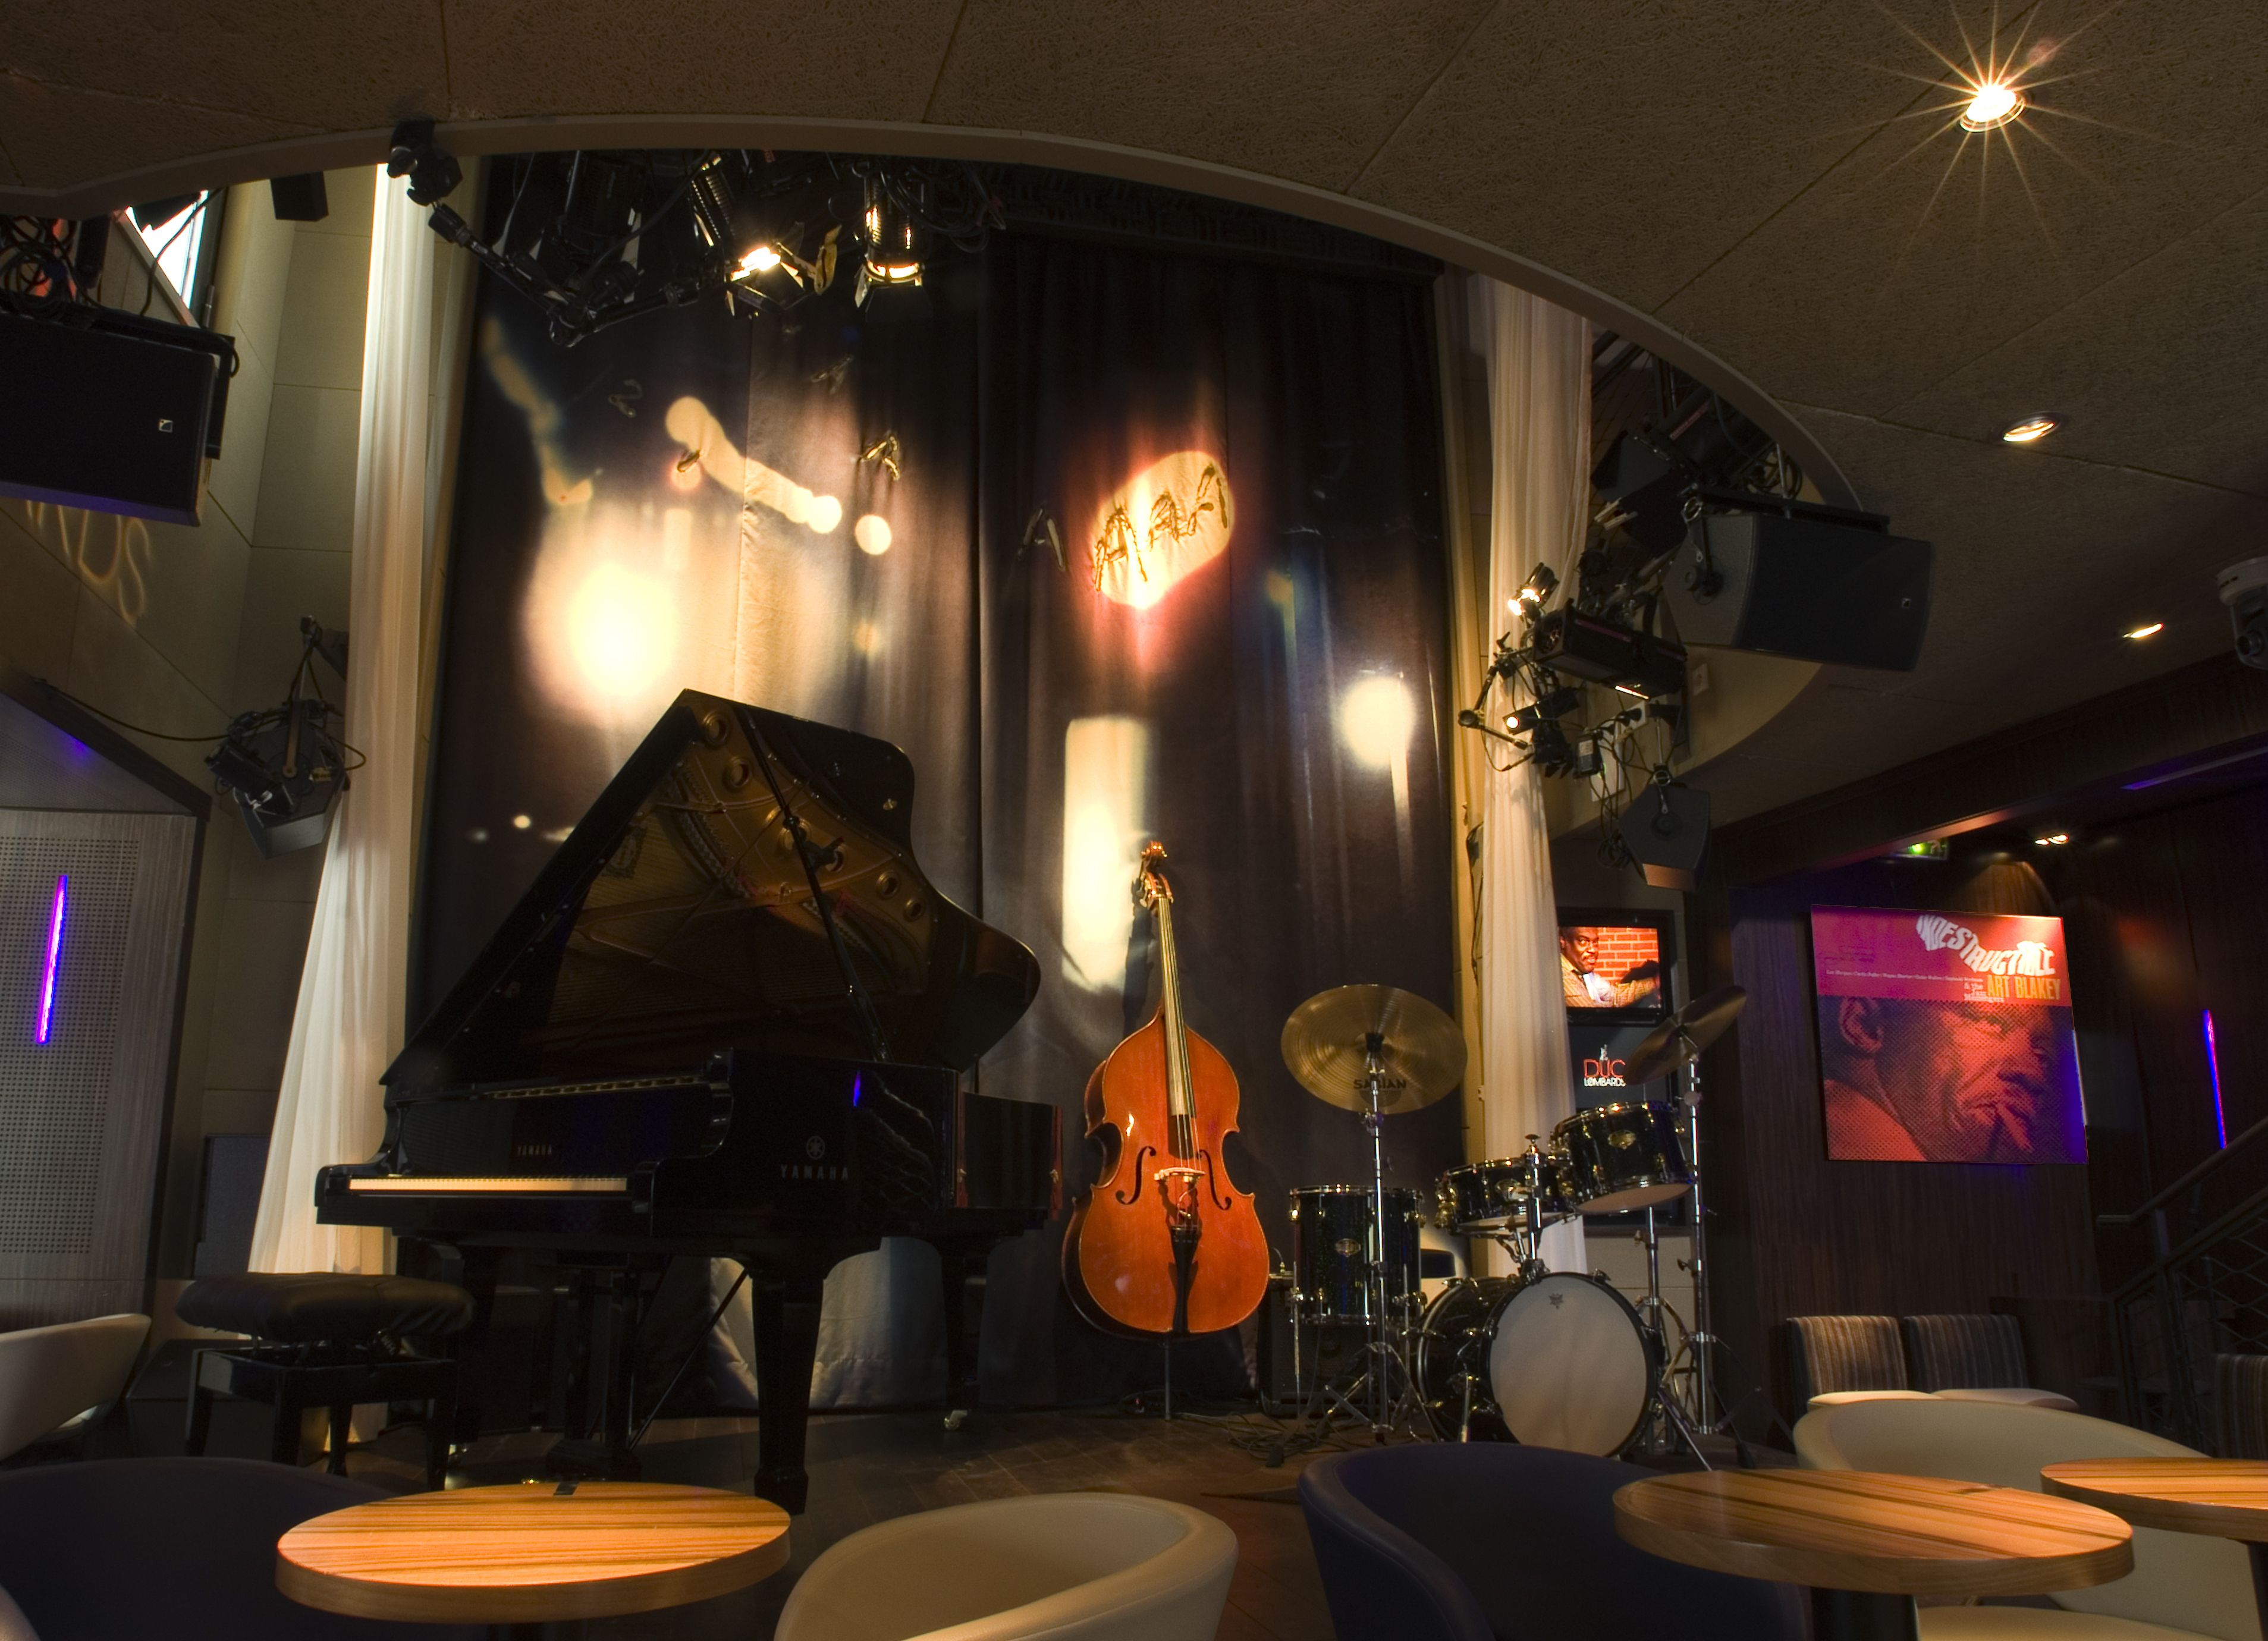 Jazz Club Decor The Designer Has Positioned Himself As